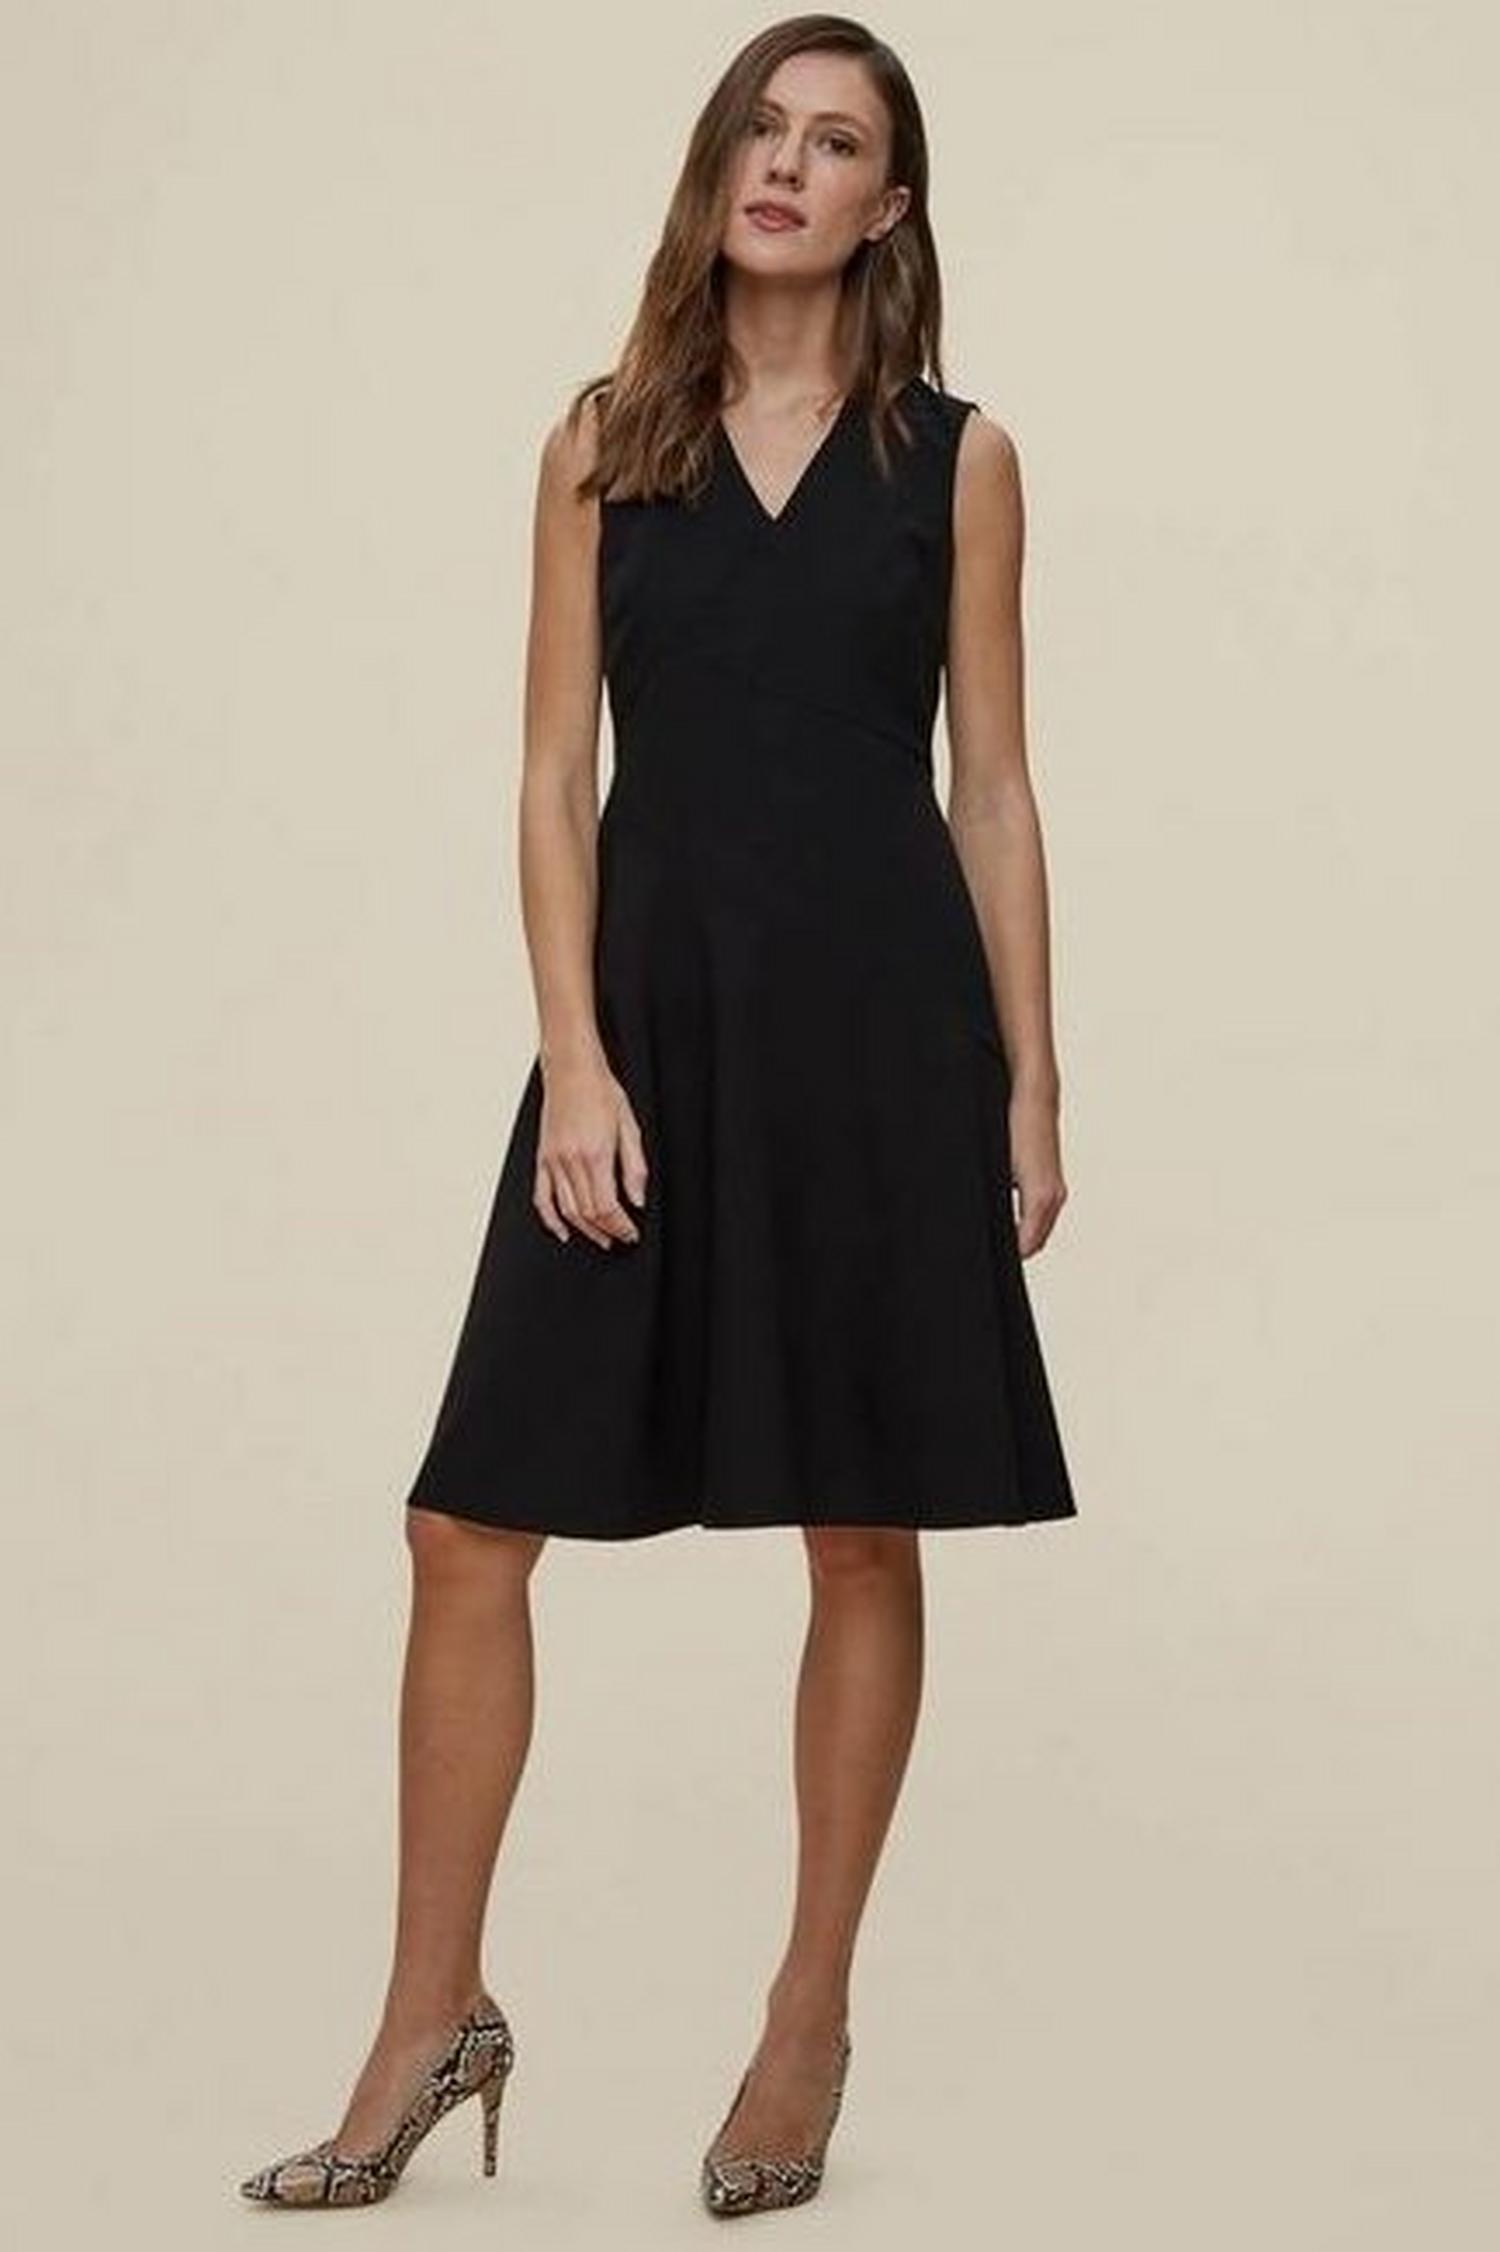 105 Black Fit And Flare Tailored Dress image number 1